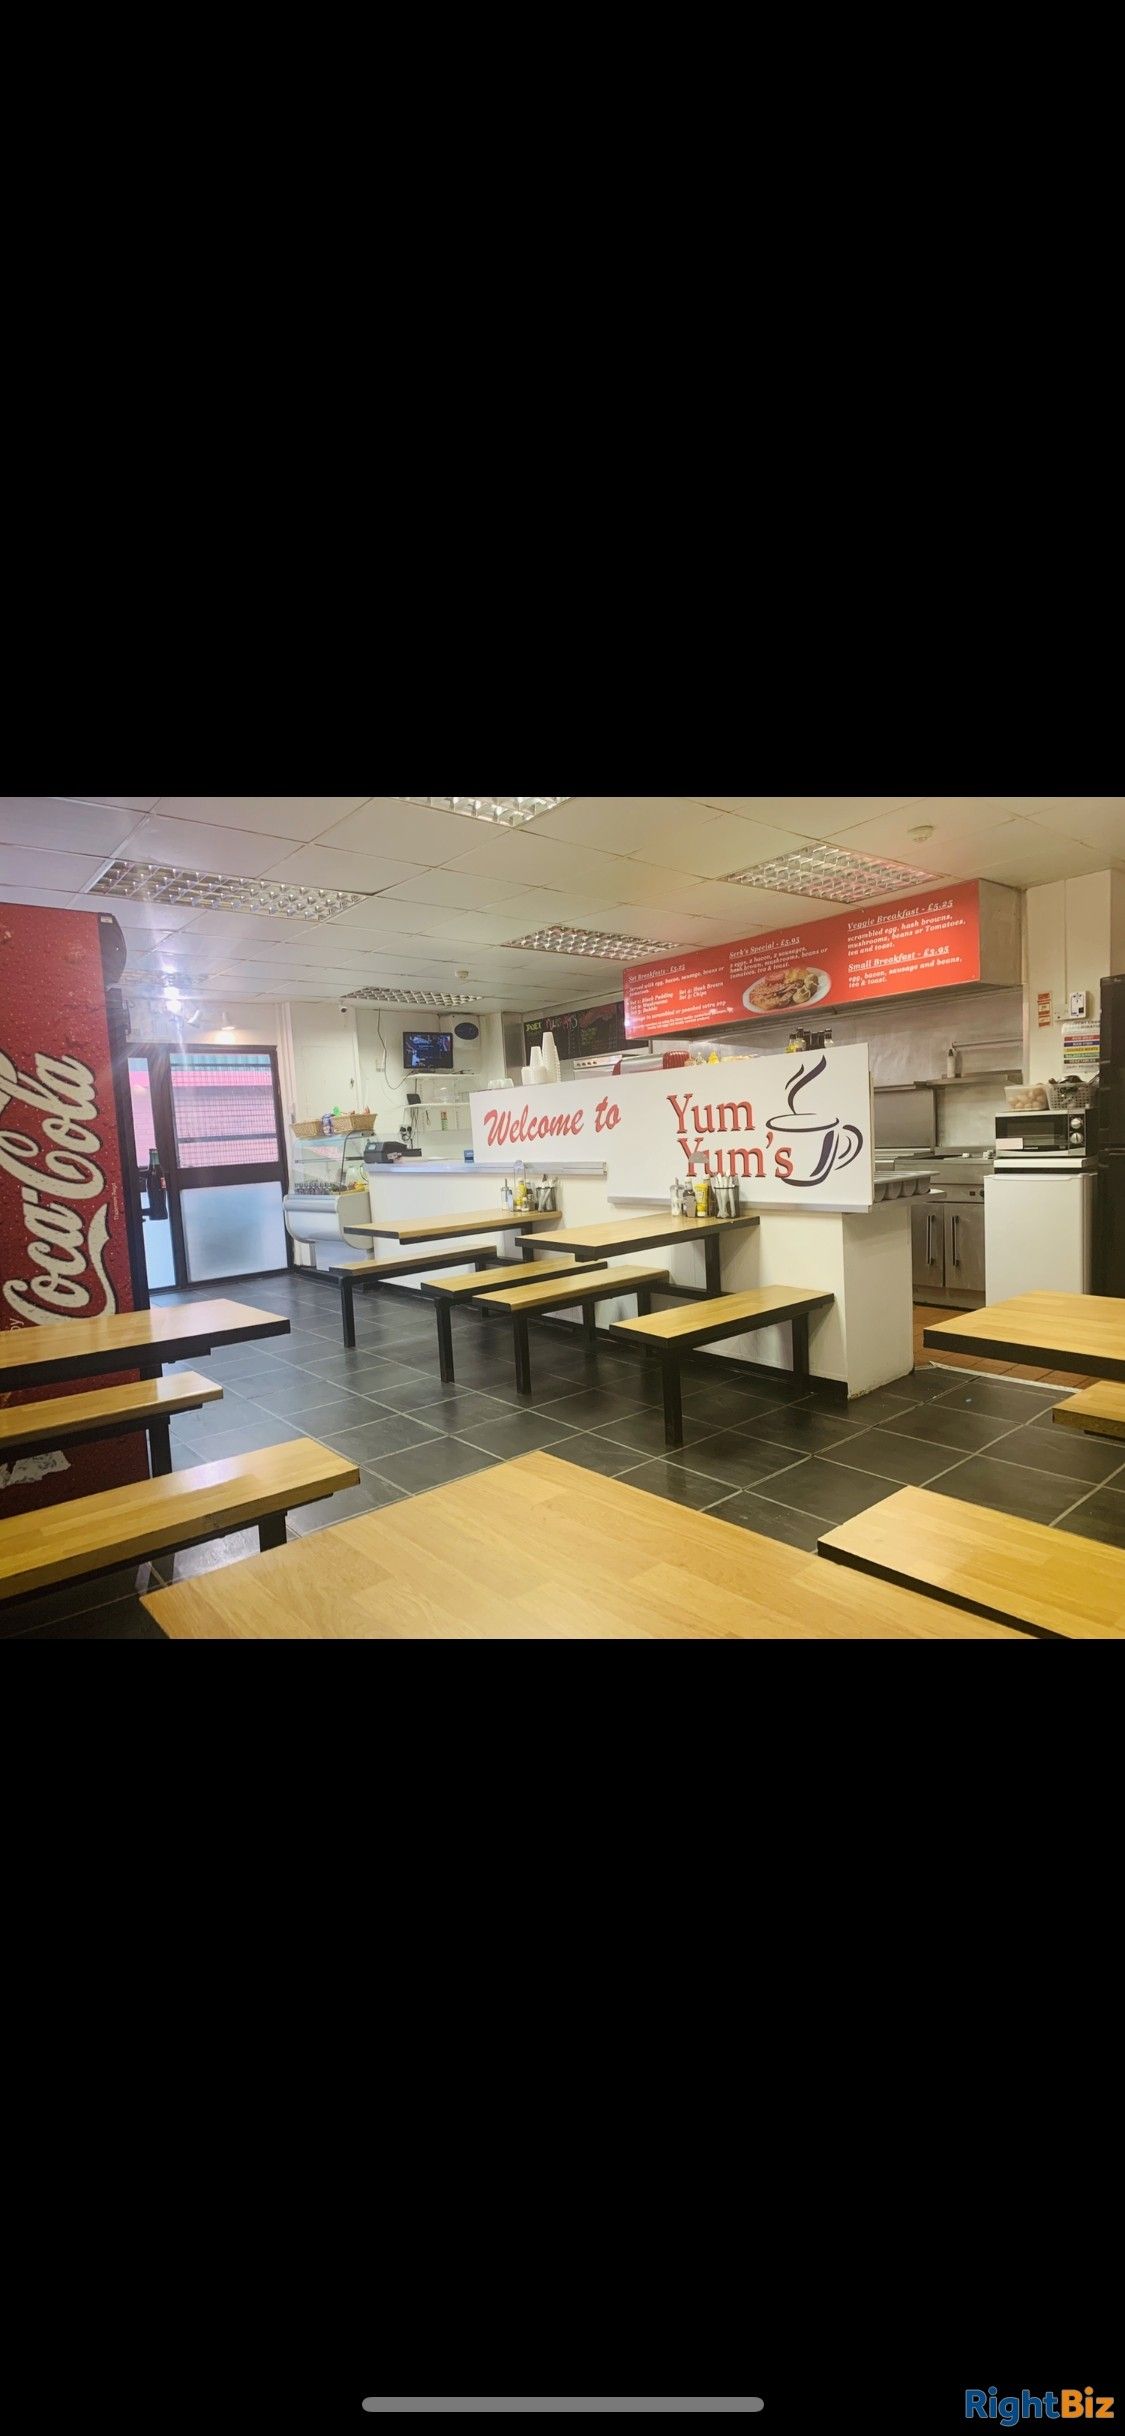 Cafe for sale - only place to eat on an industrial estate for 52 businesses - quick sale - Image 2